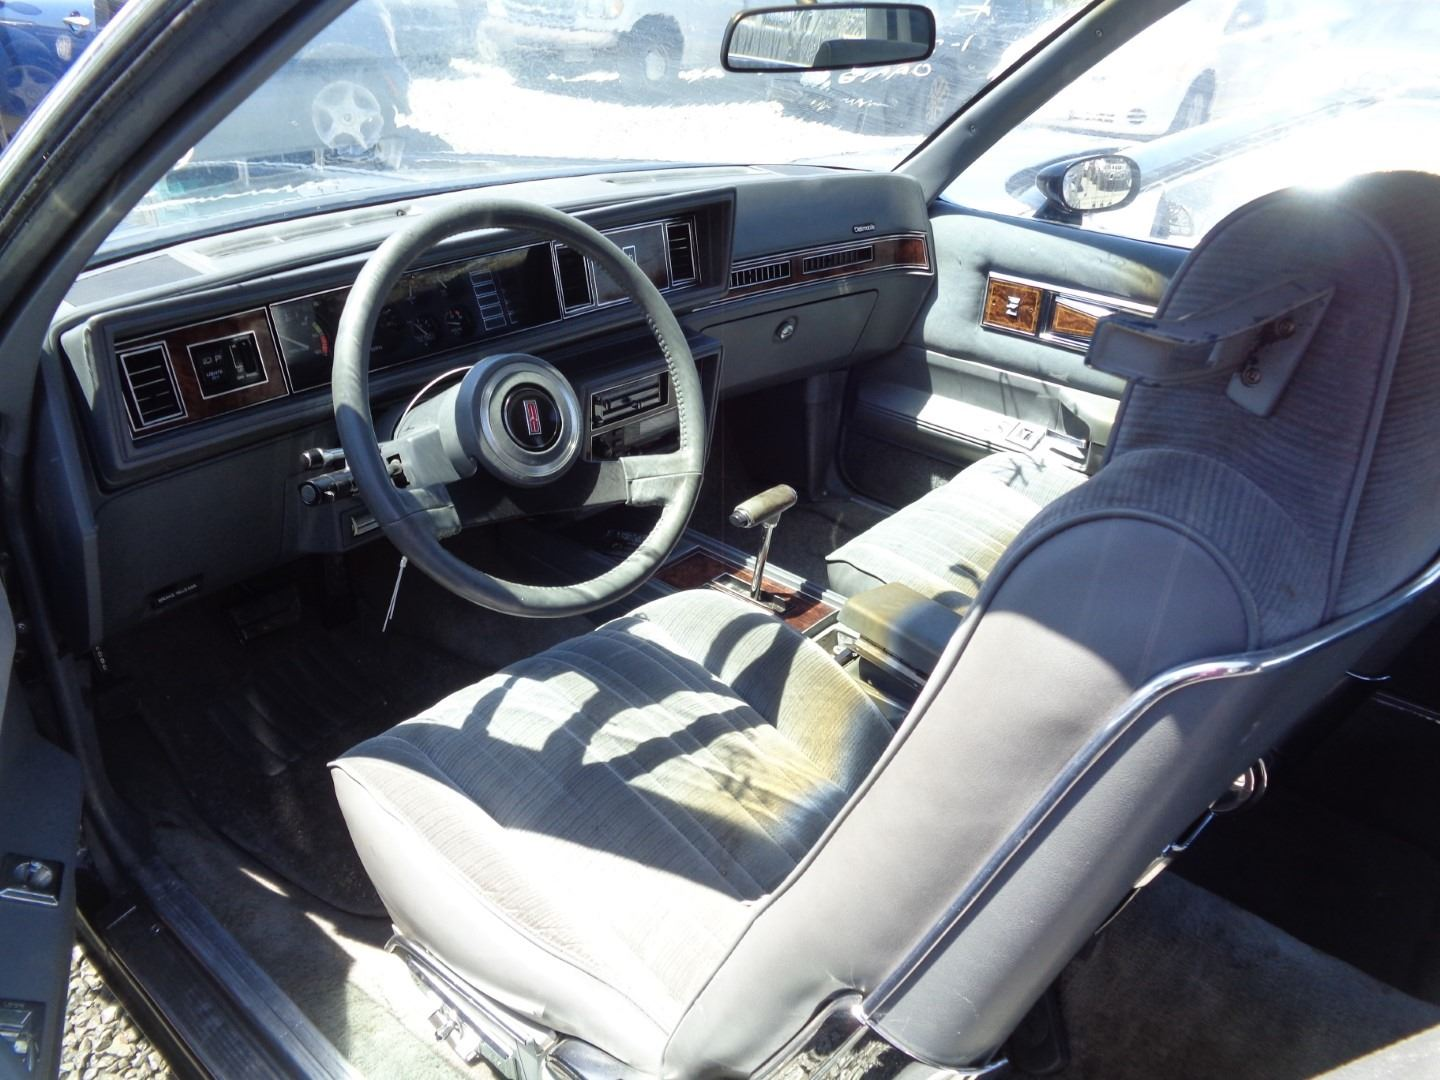 OLDSMOBILE CUTLASS 1985 T-DONATION